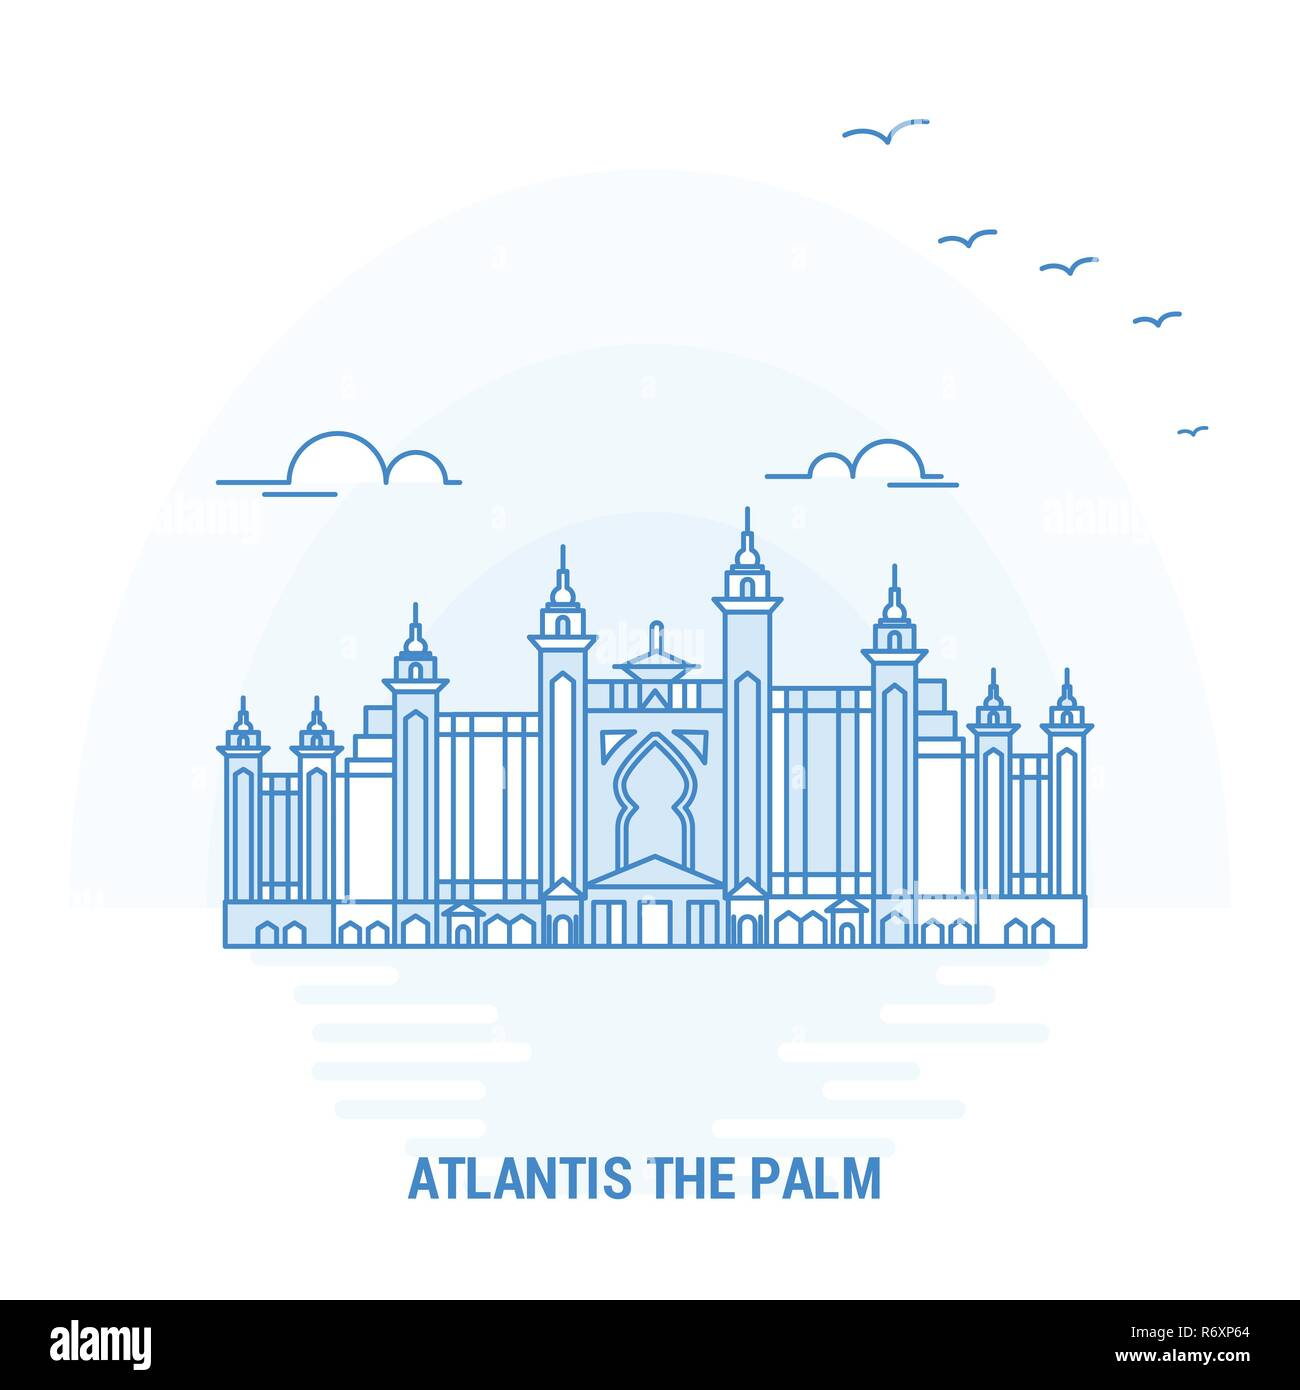 ATLANTIS THE PALM Blue Landmark. Creative background and Poster Template - Stock Image